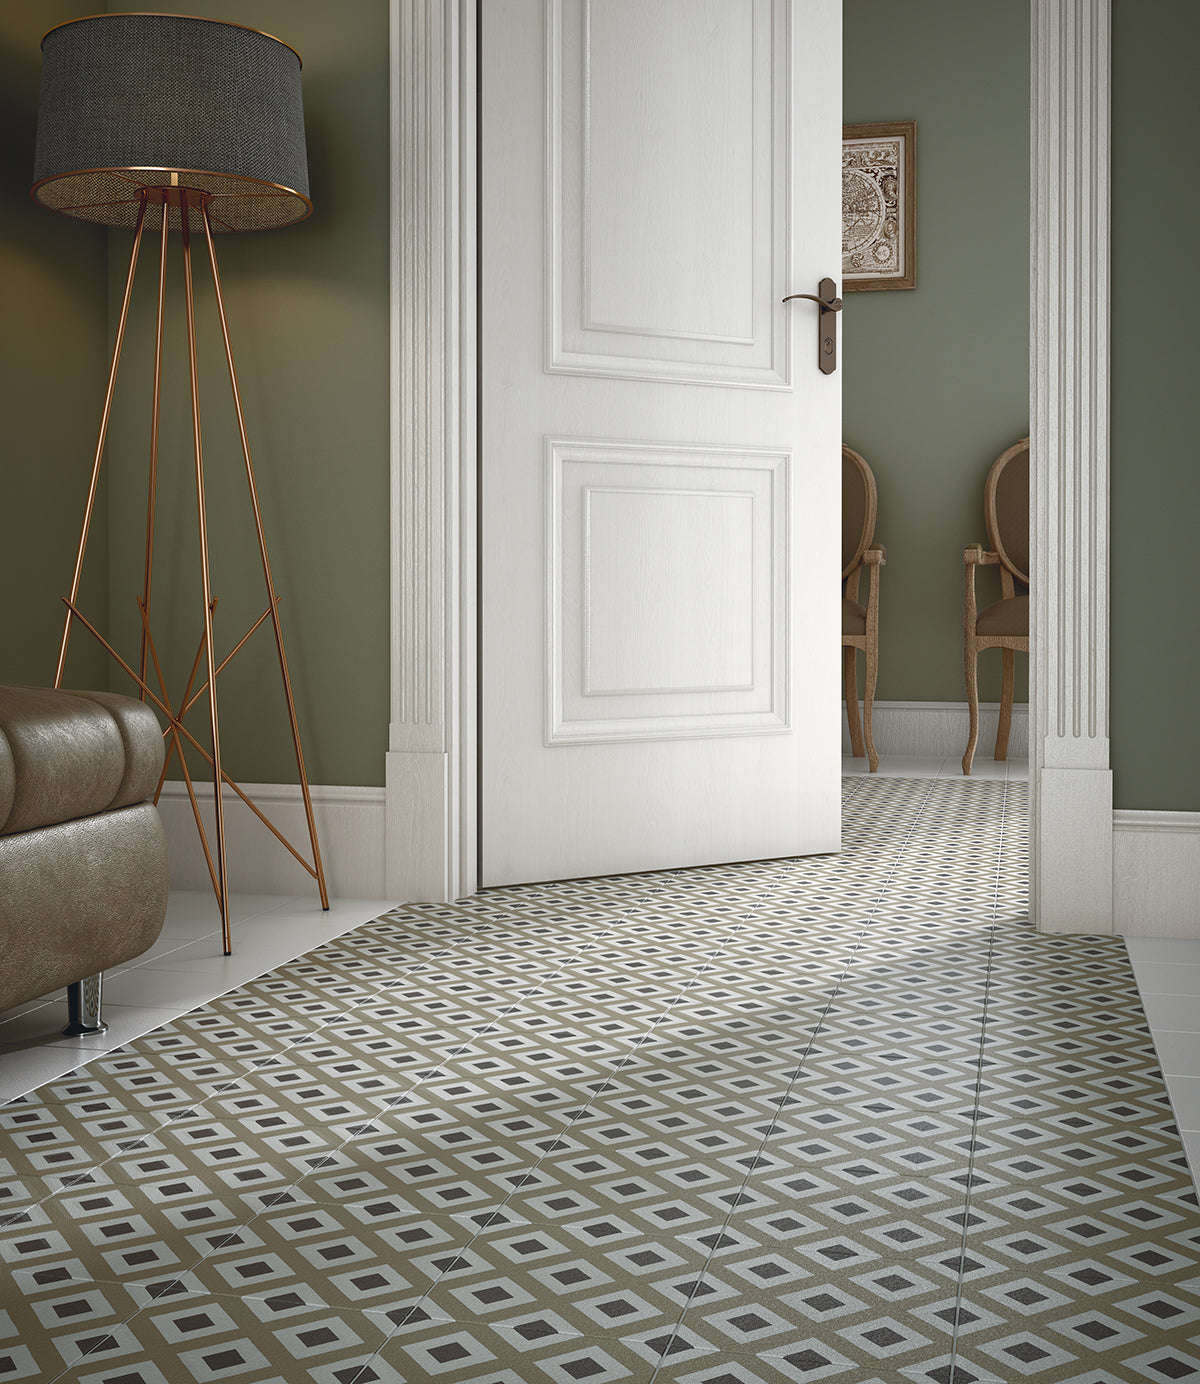 London Funk Statement Tiles